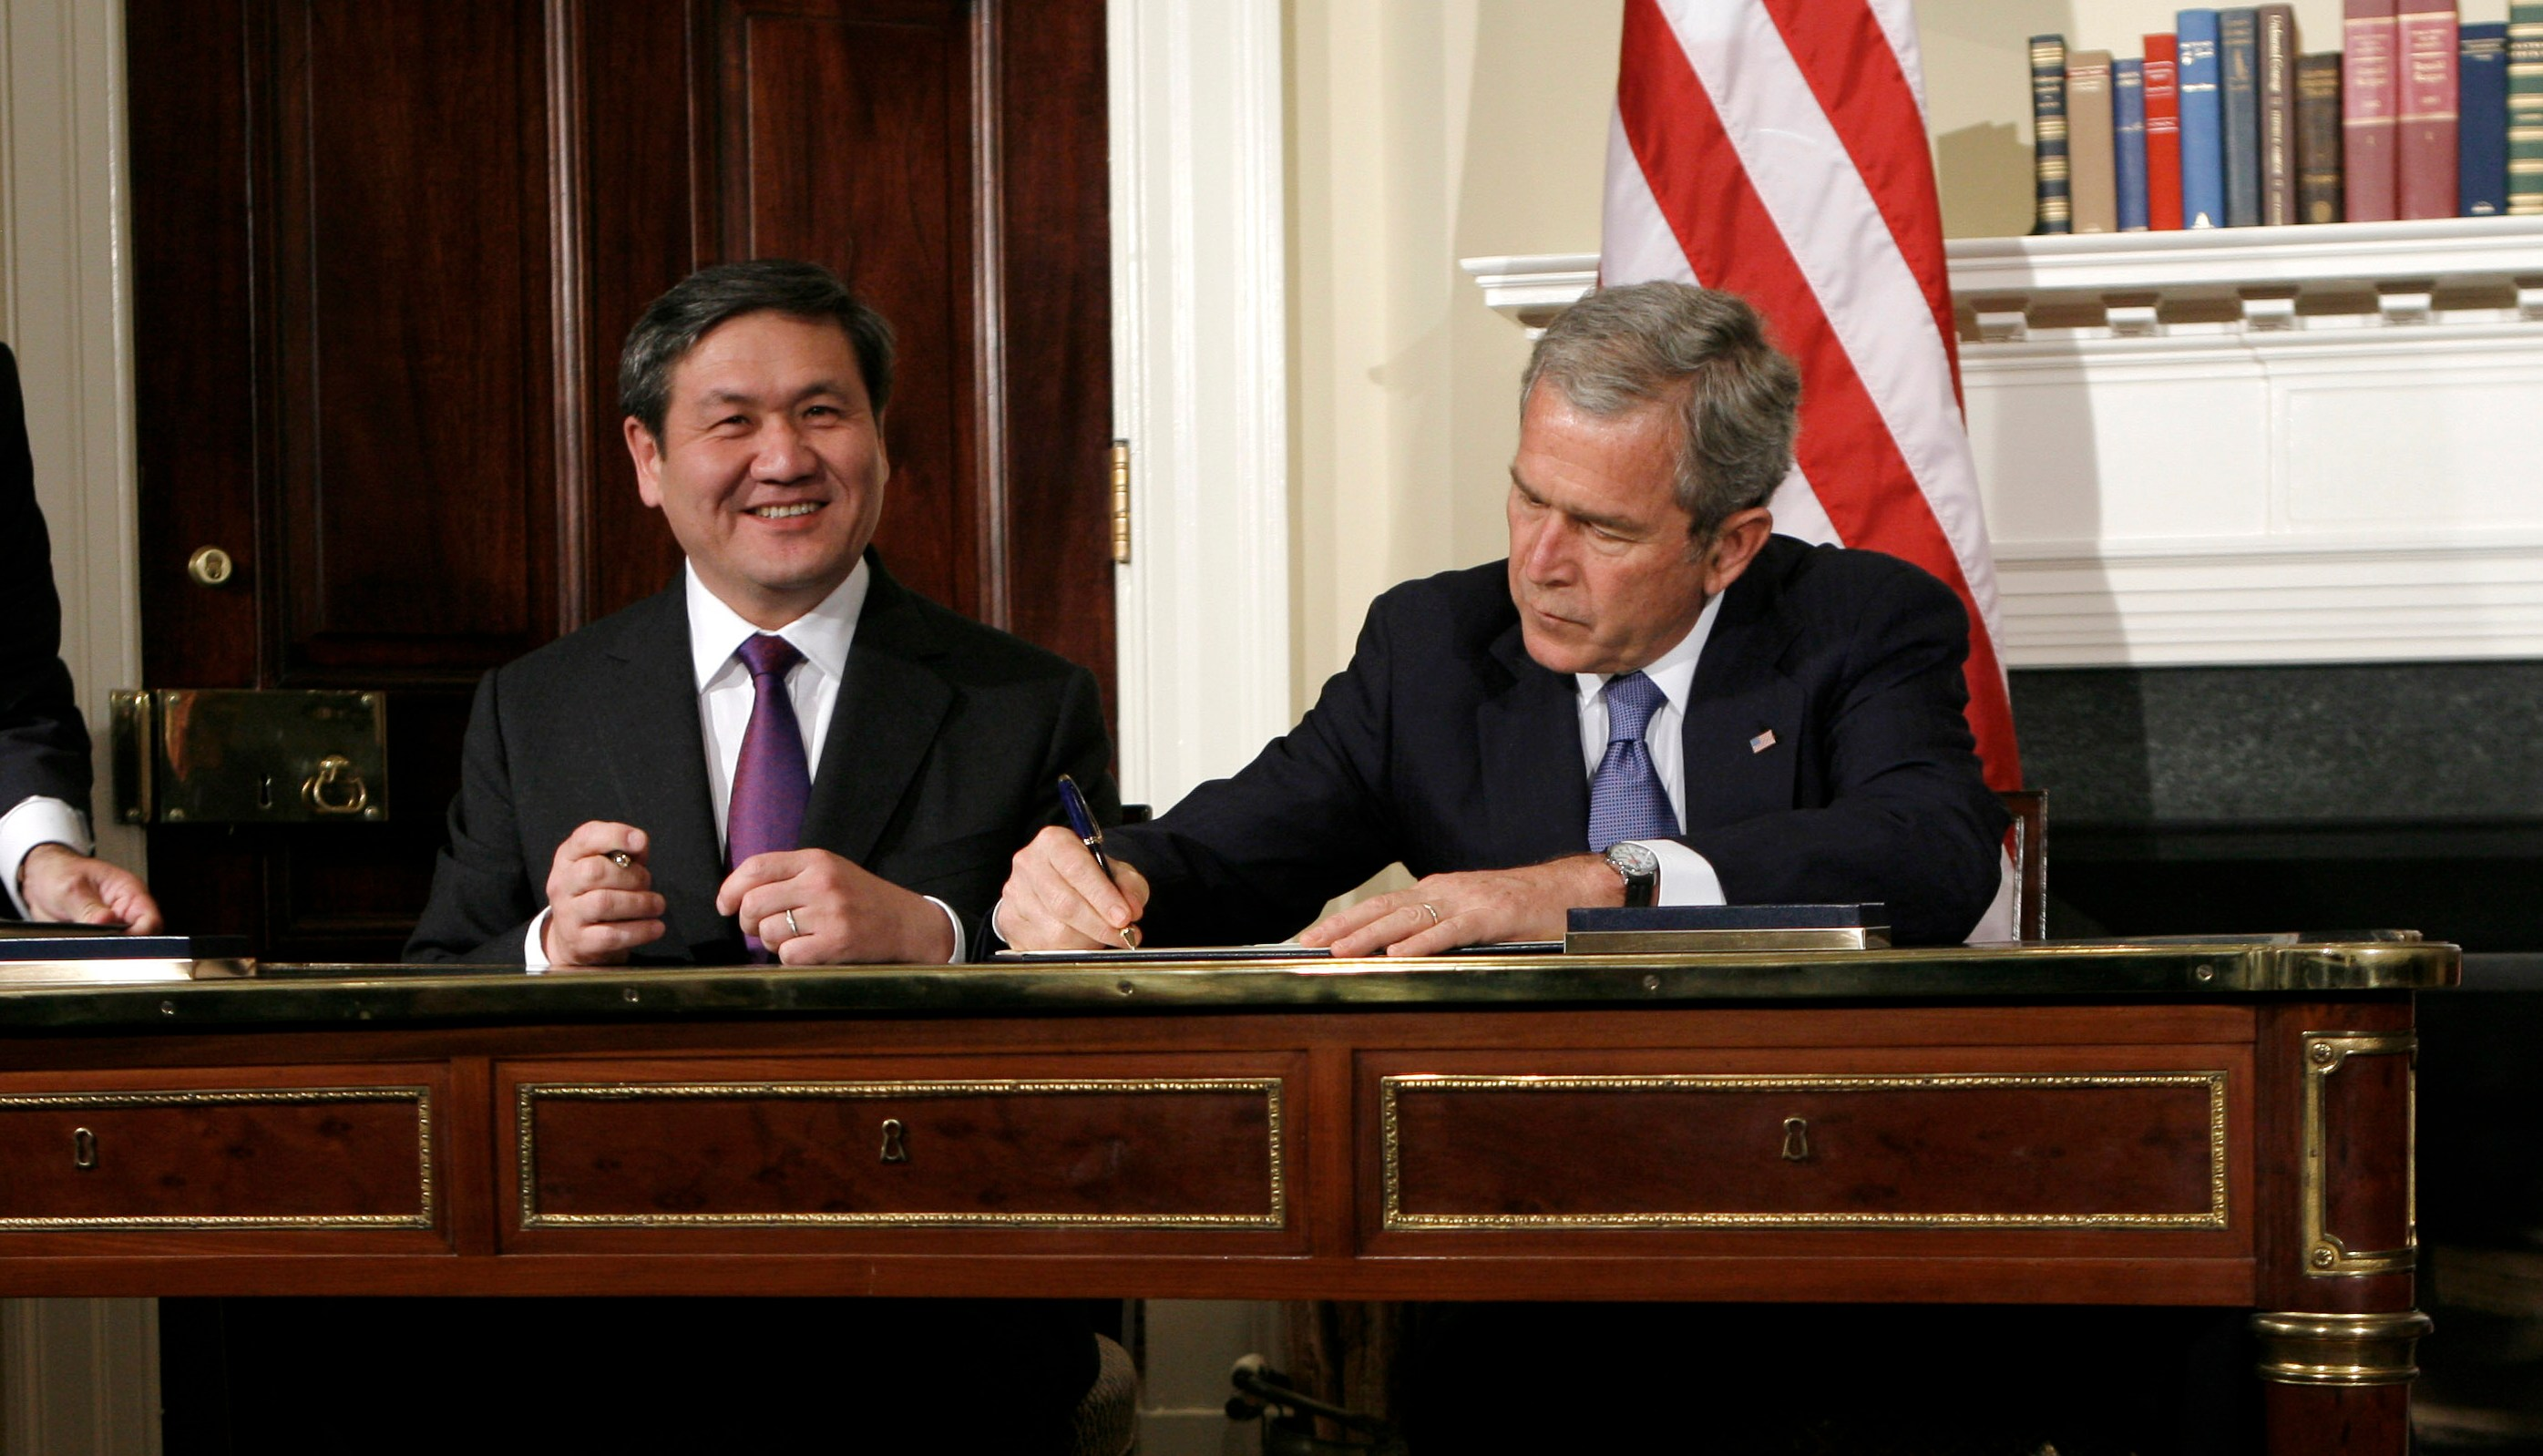 U.S. President George W. Bush (R) and Mongolian President Nambaryn Enkhbayar sign the Millennium Challenge Corporation Compact at the White House in Washington October 22, 2007.    REUTERS/Kevin Lamarque  (UNITED STATES) - GM1DWKURZWAA